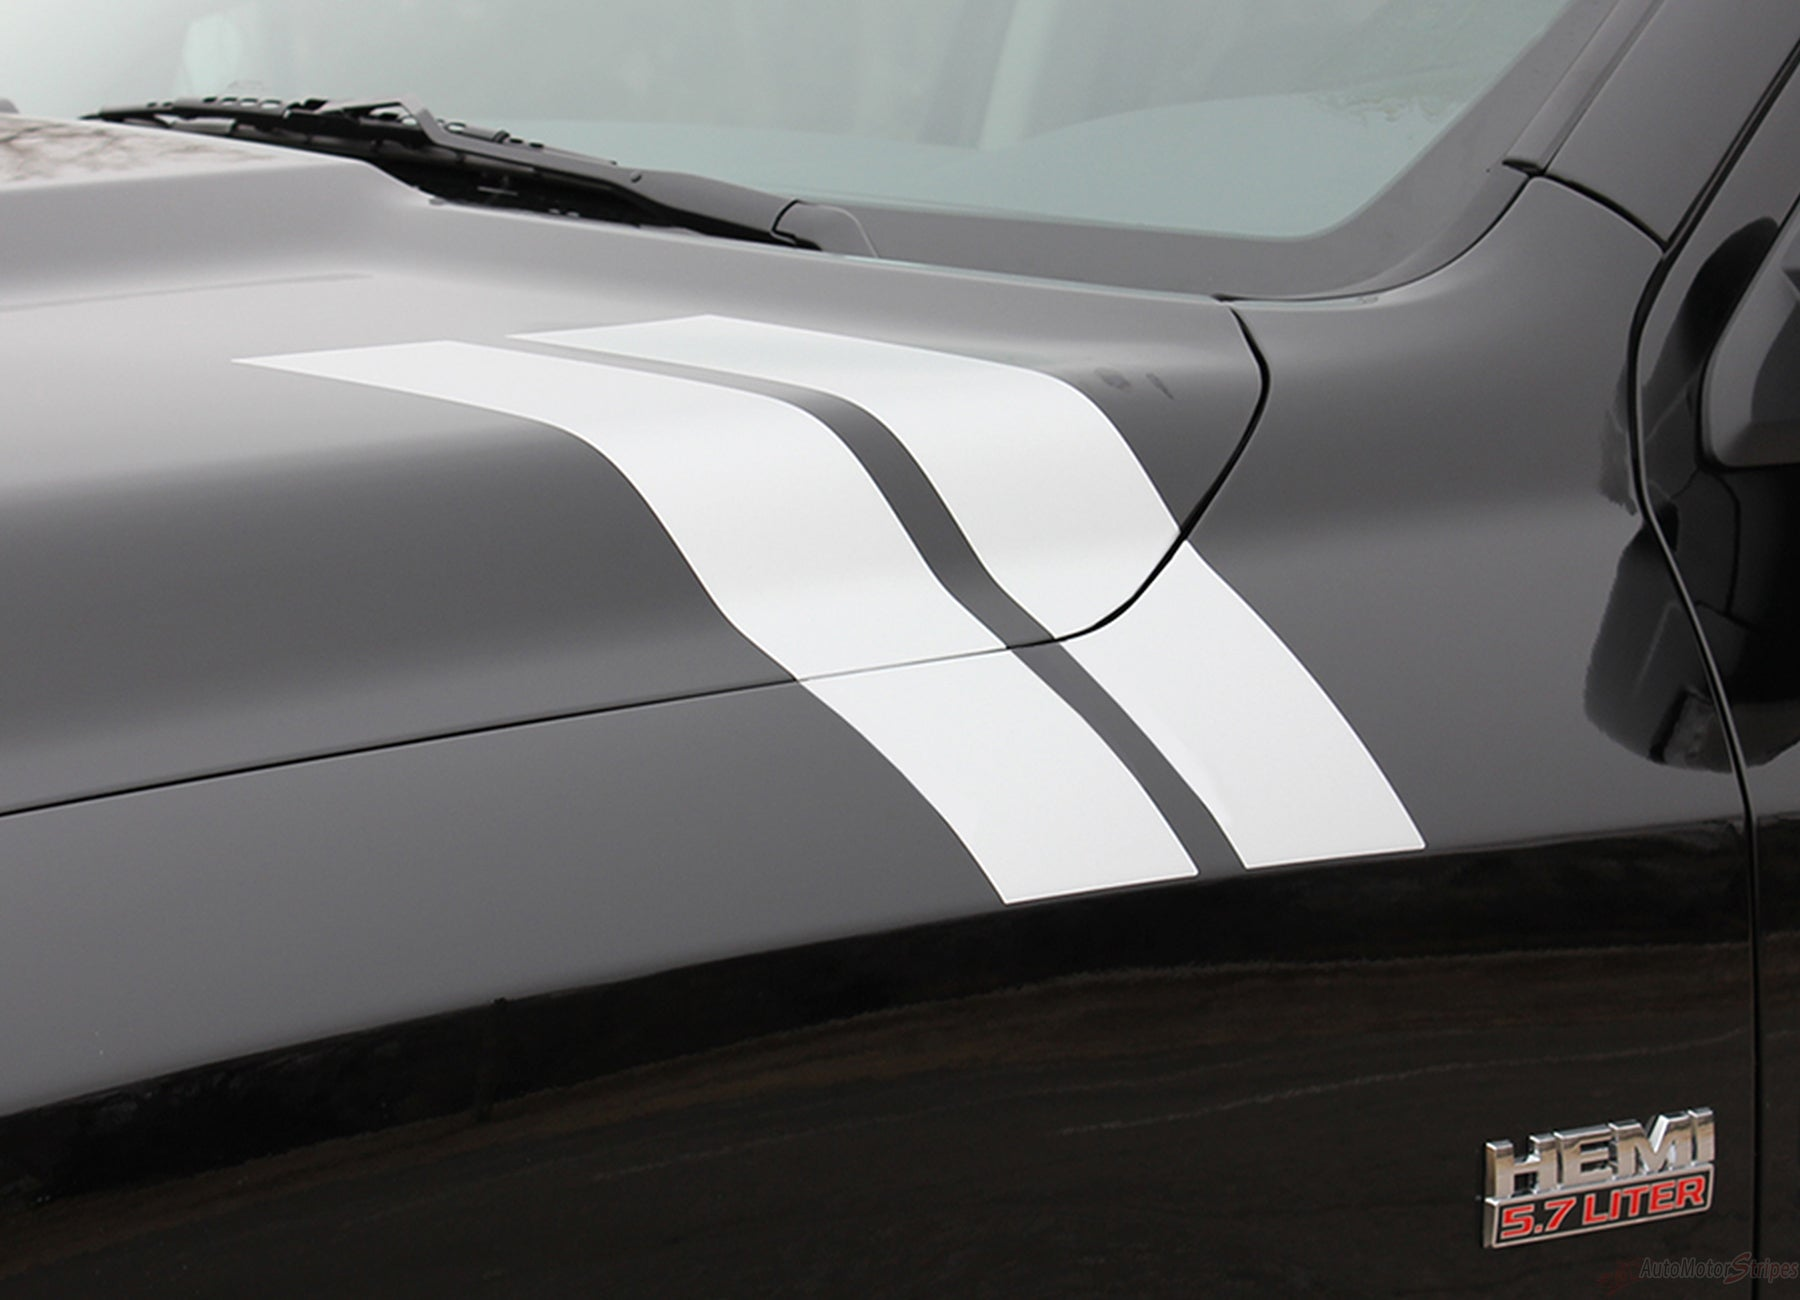 2009 2018 Dodge Ram Hood Stripes Hash Marks Double Bar Truck Decals Auto Motor Stripes Decals Vinyl Graphics And 3m Striping Kits